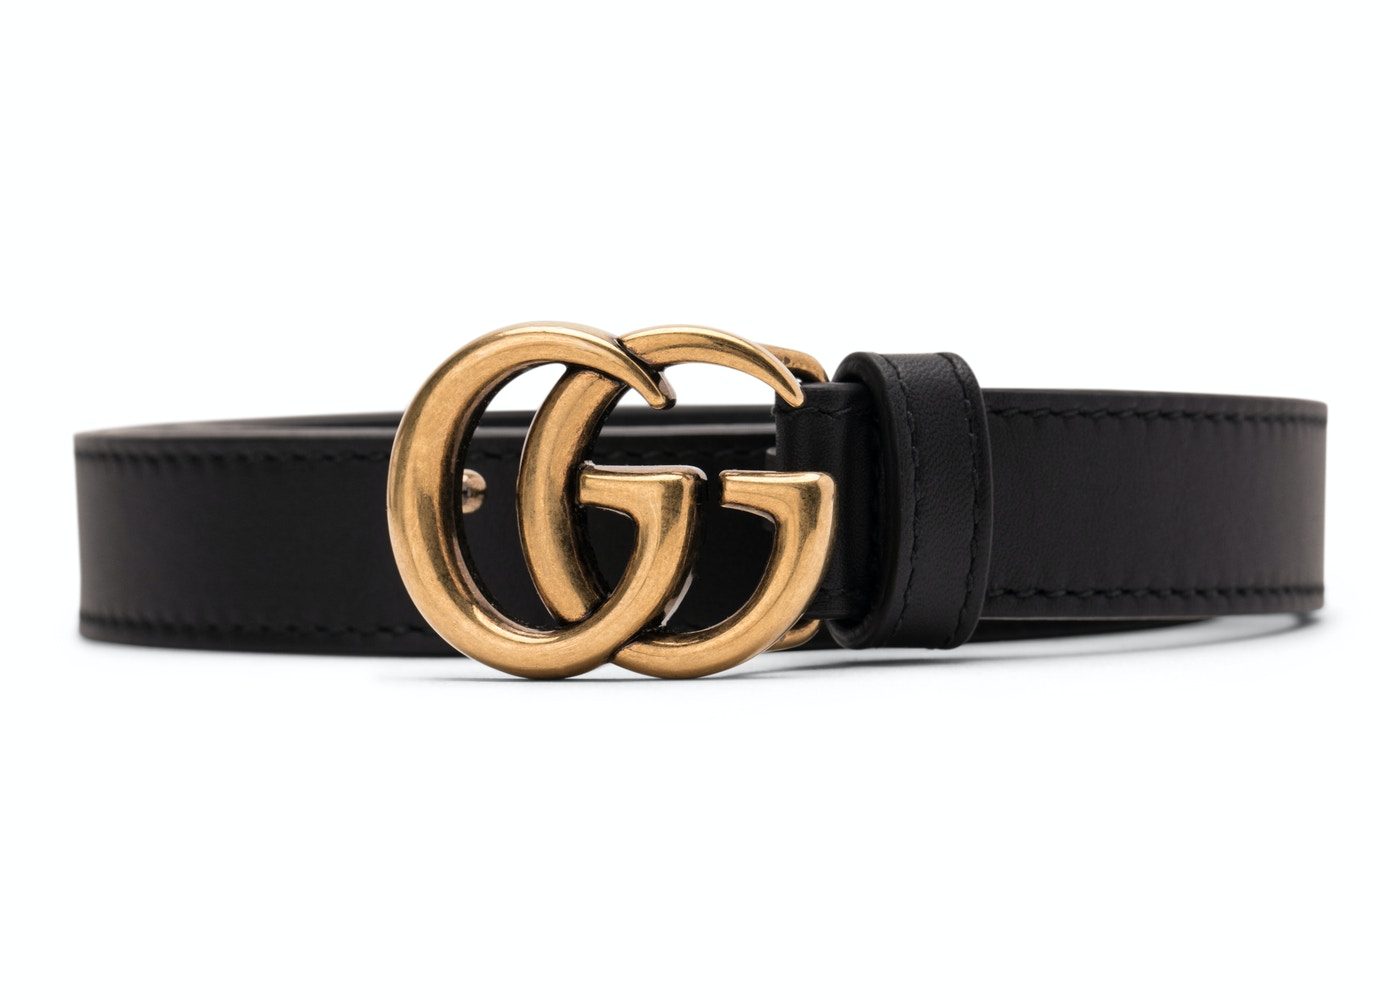 0f0e6cd2e Gucci Double G Gold Buckle Leather Belt 0.8 Width Black